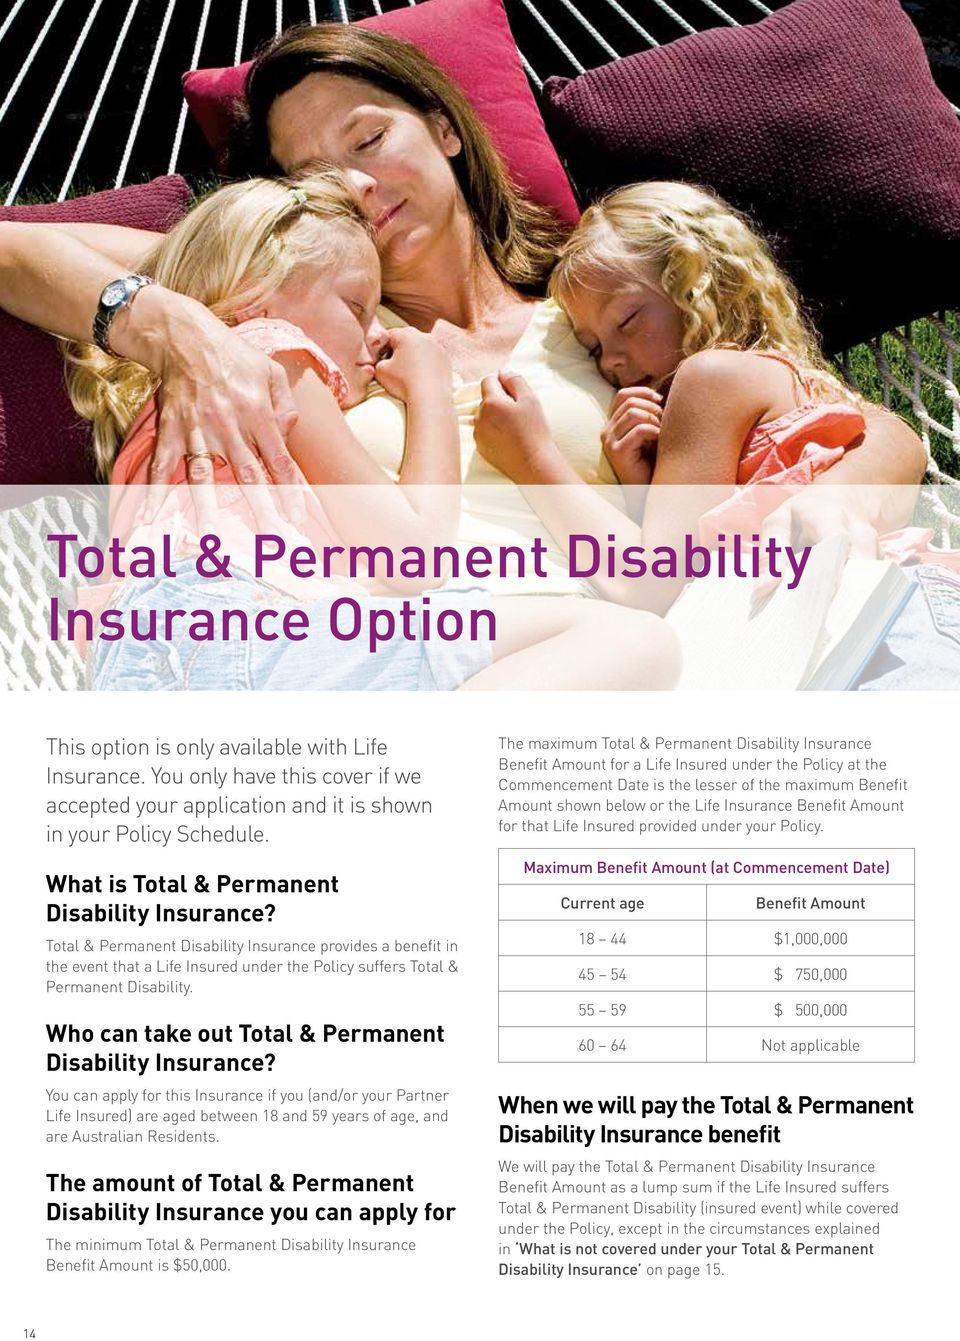 Who can take out Total & Permanent Disability Insurance?